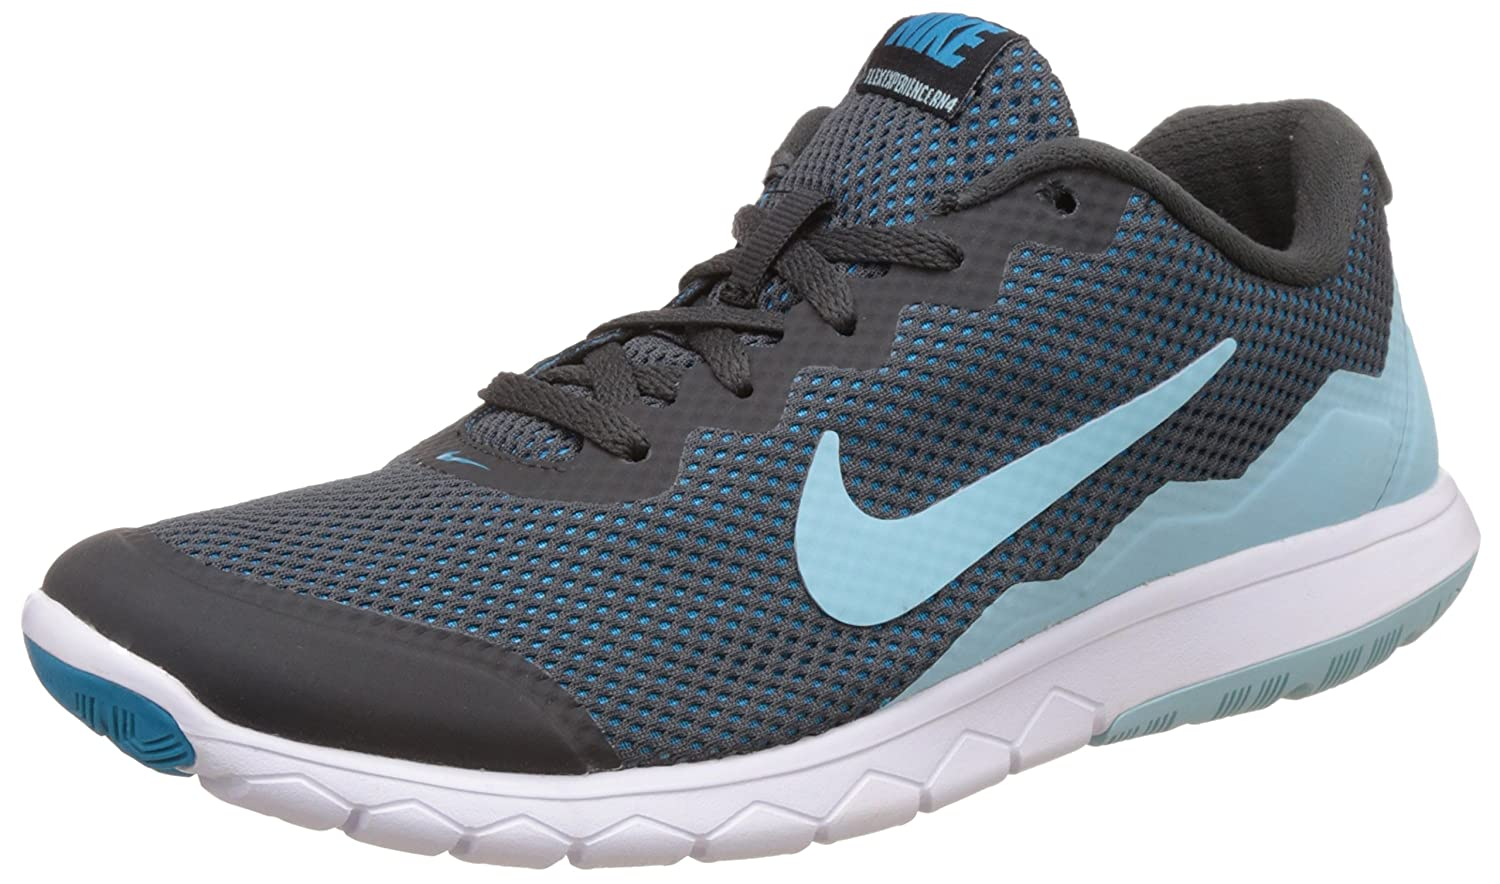 NIKE Men's Flex 2014 RN Running Shoe B002B4HVZU 6.5 B(M) US|Anthracite/Blue Lagoon